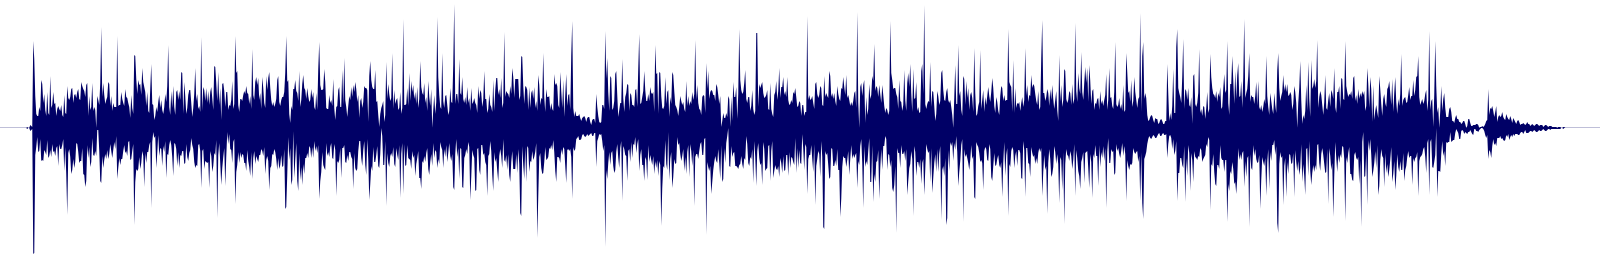 waveform of track #146487